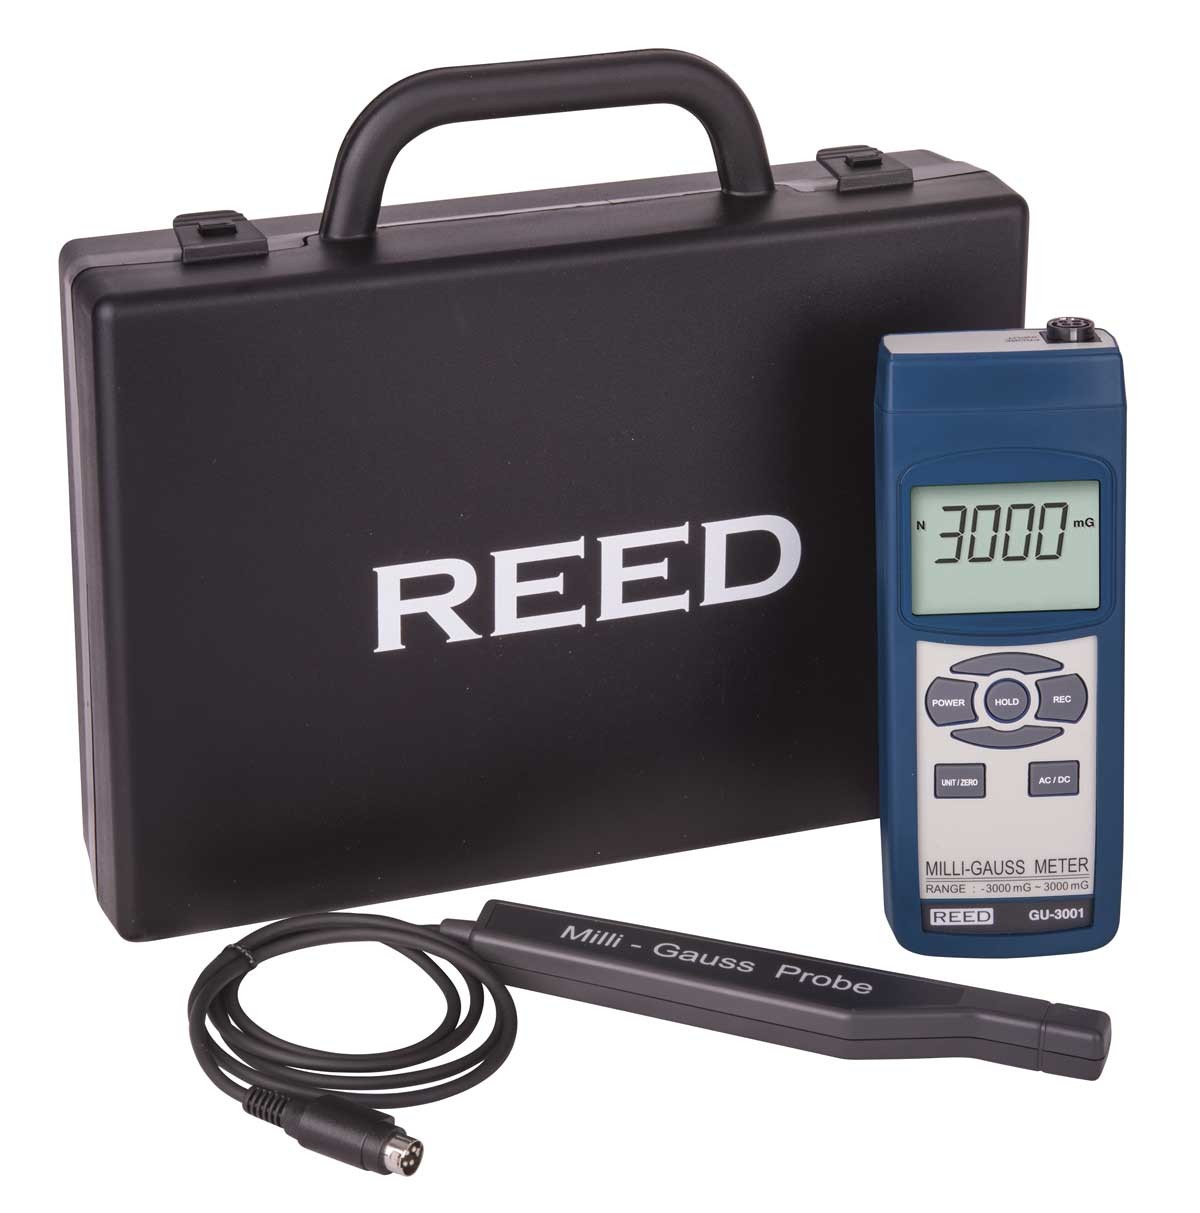 REED GU-3001 Electromagnetic Field (EMF) Meter, milliGauss (mG)/ microTesla(µT)-Included